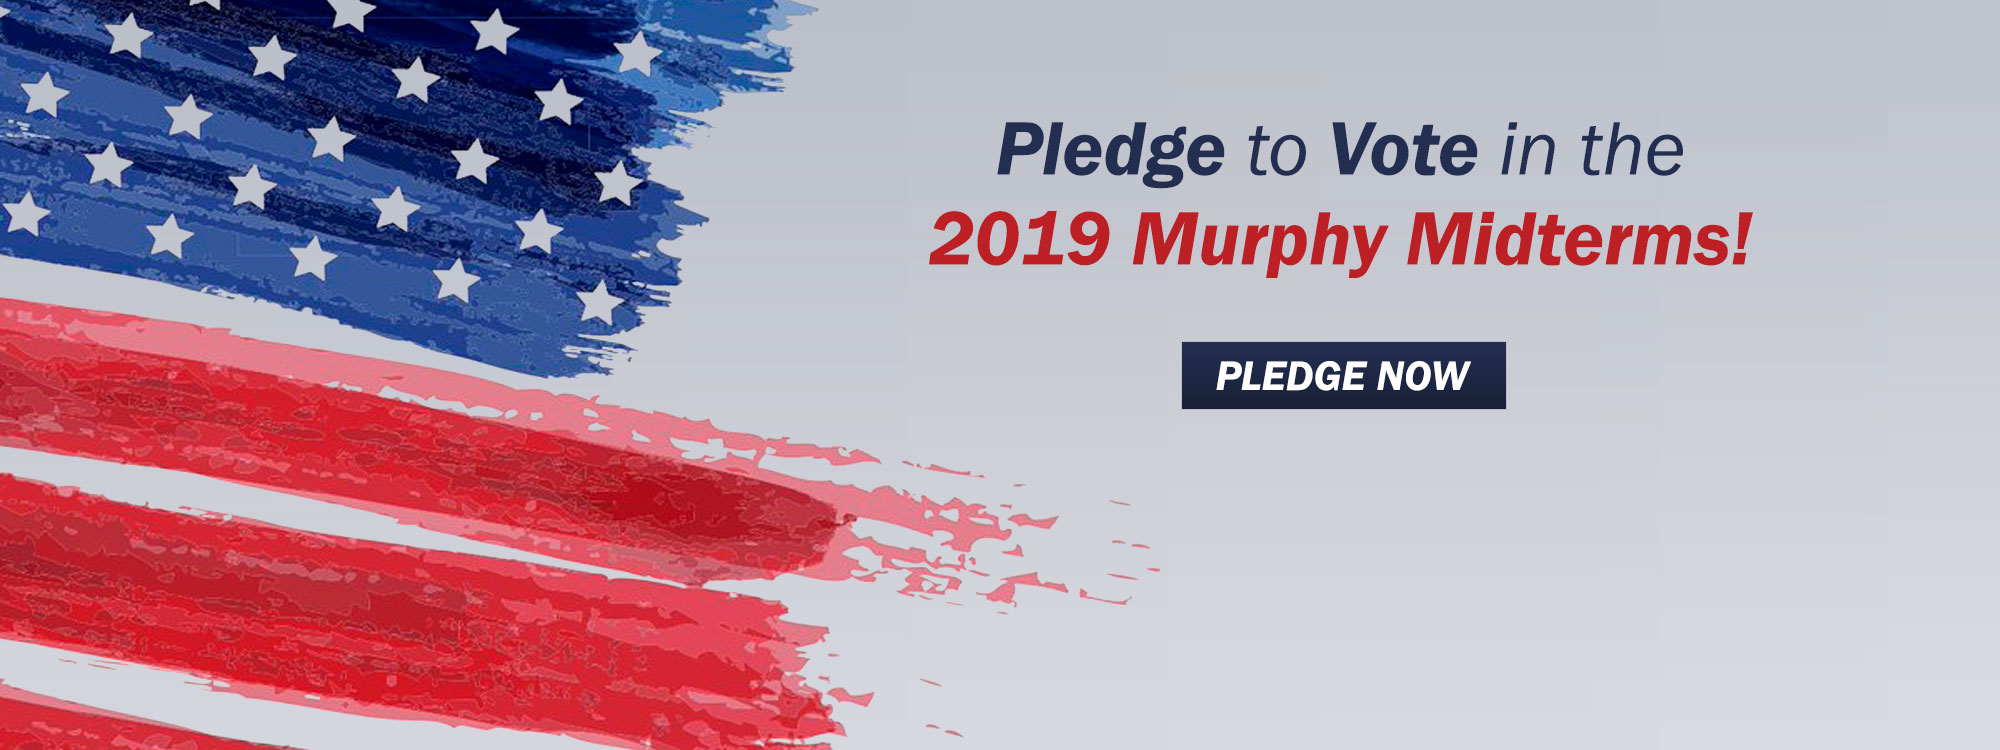 Pledge to Vote in the 2019 Murphy Midterms!